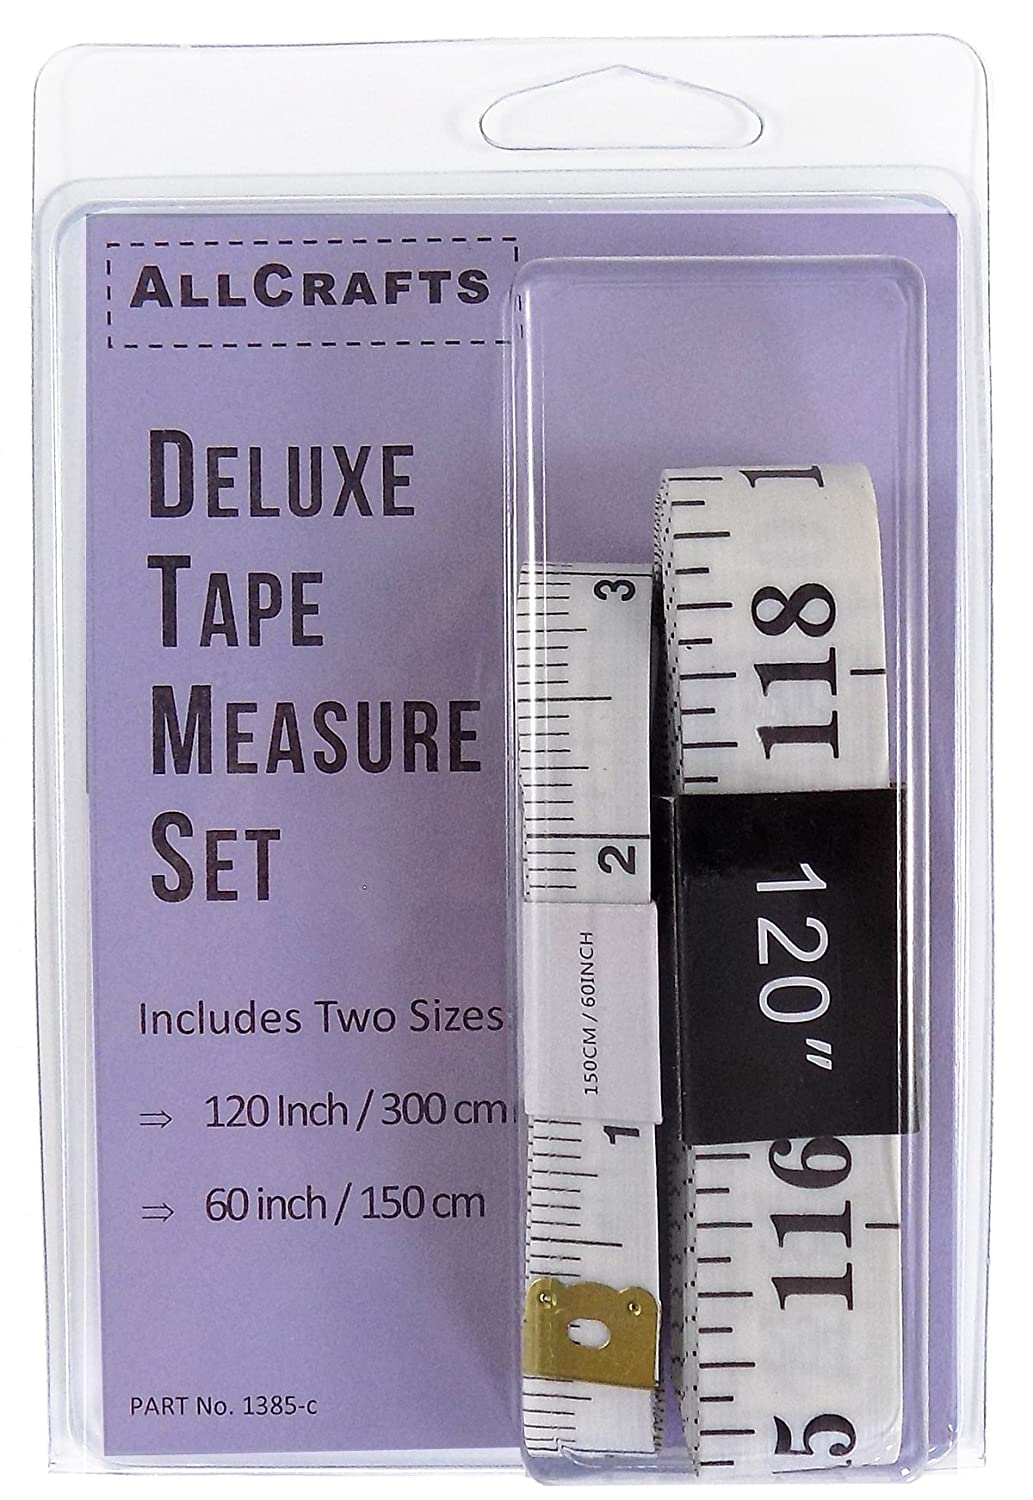 60-Inch and 120-Inch Soft Measuring Tape Measure for Sewing Tailor Cloth Quilting Ruler (2 Pack) AllCrafts 1385-c